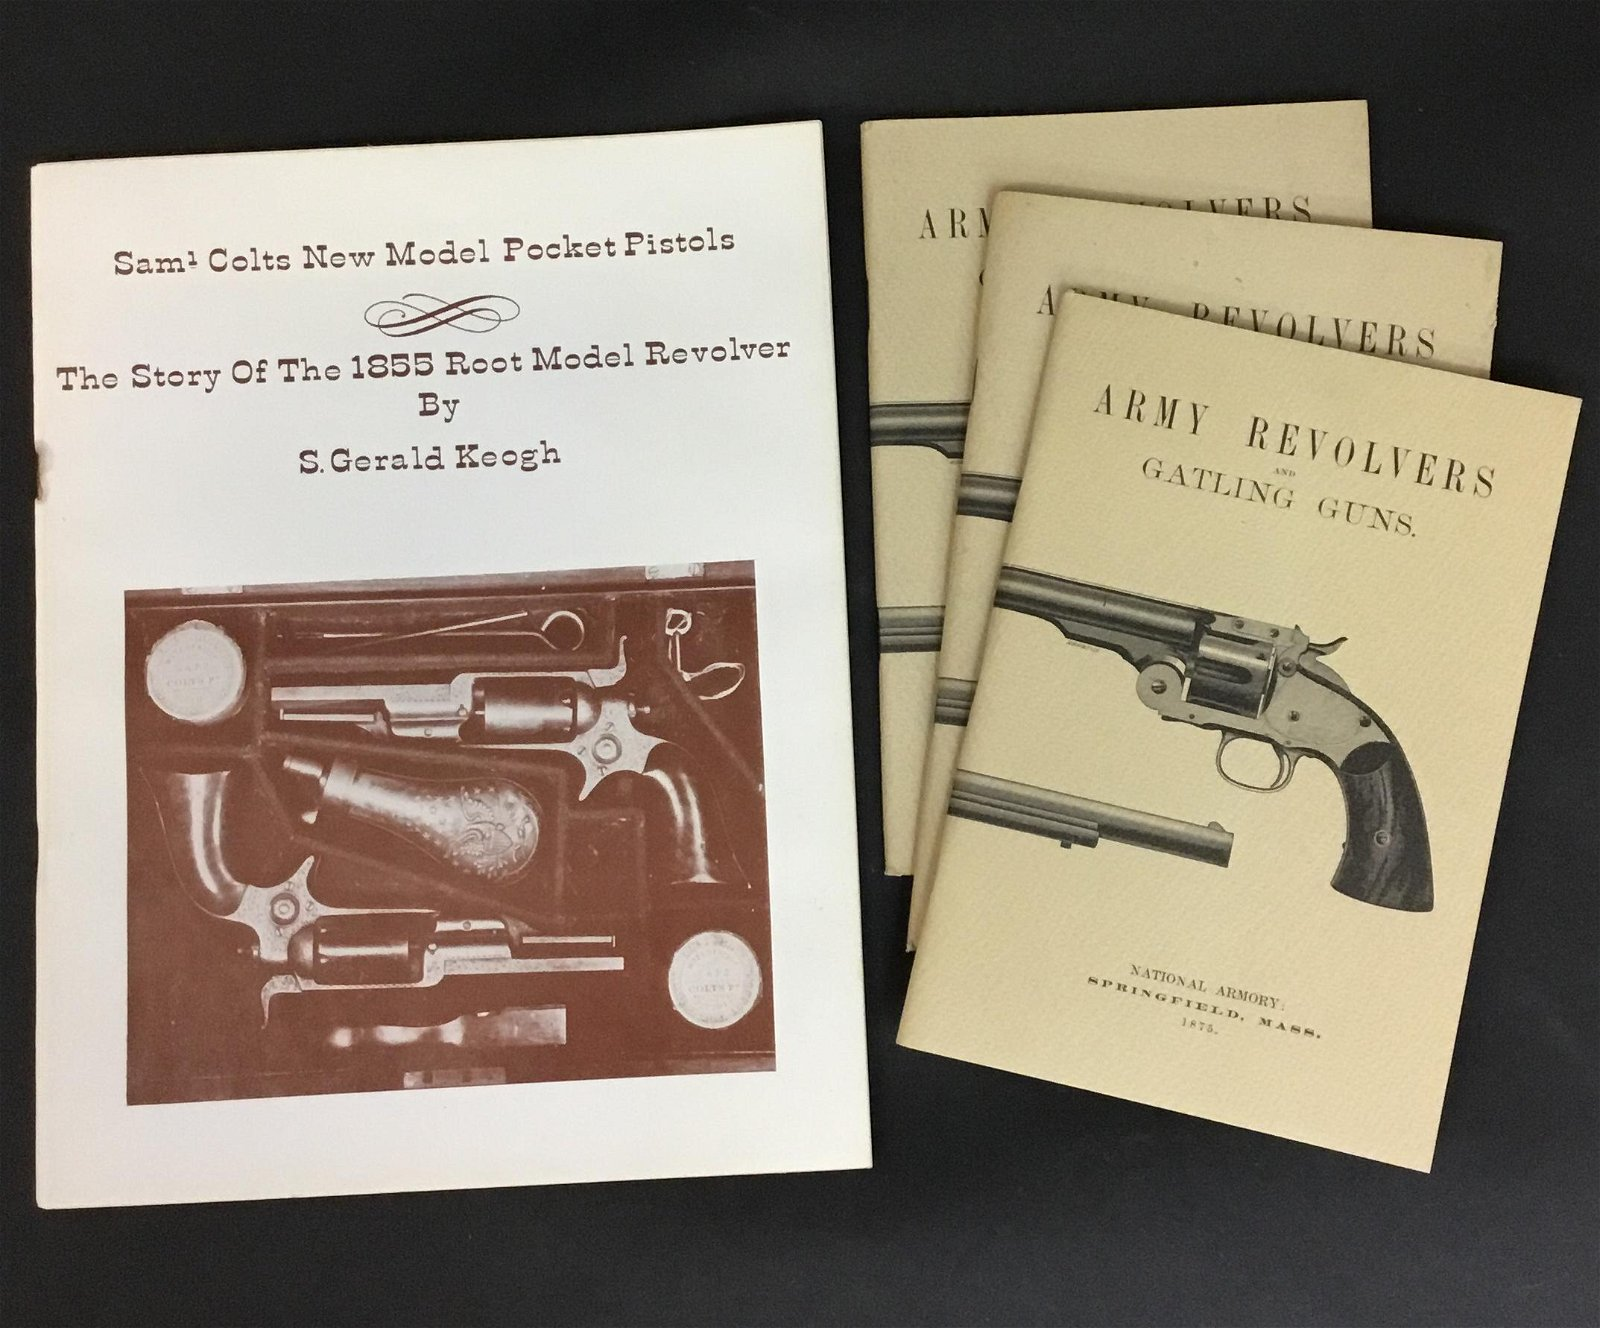 Saml Colts Pocket Pistols and Army Revolvers and